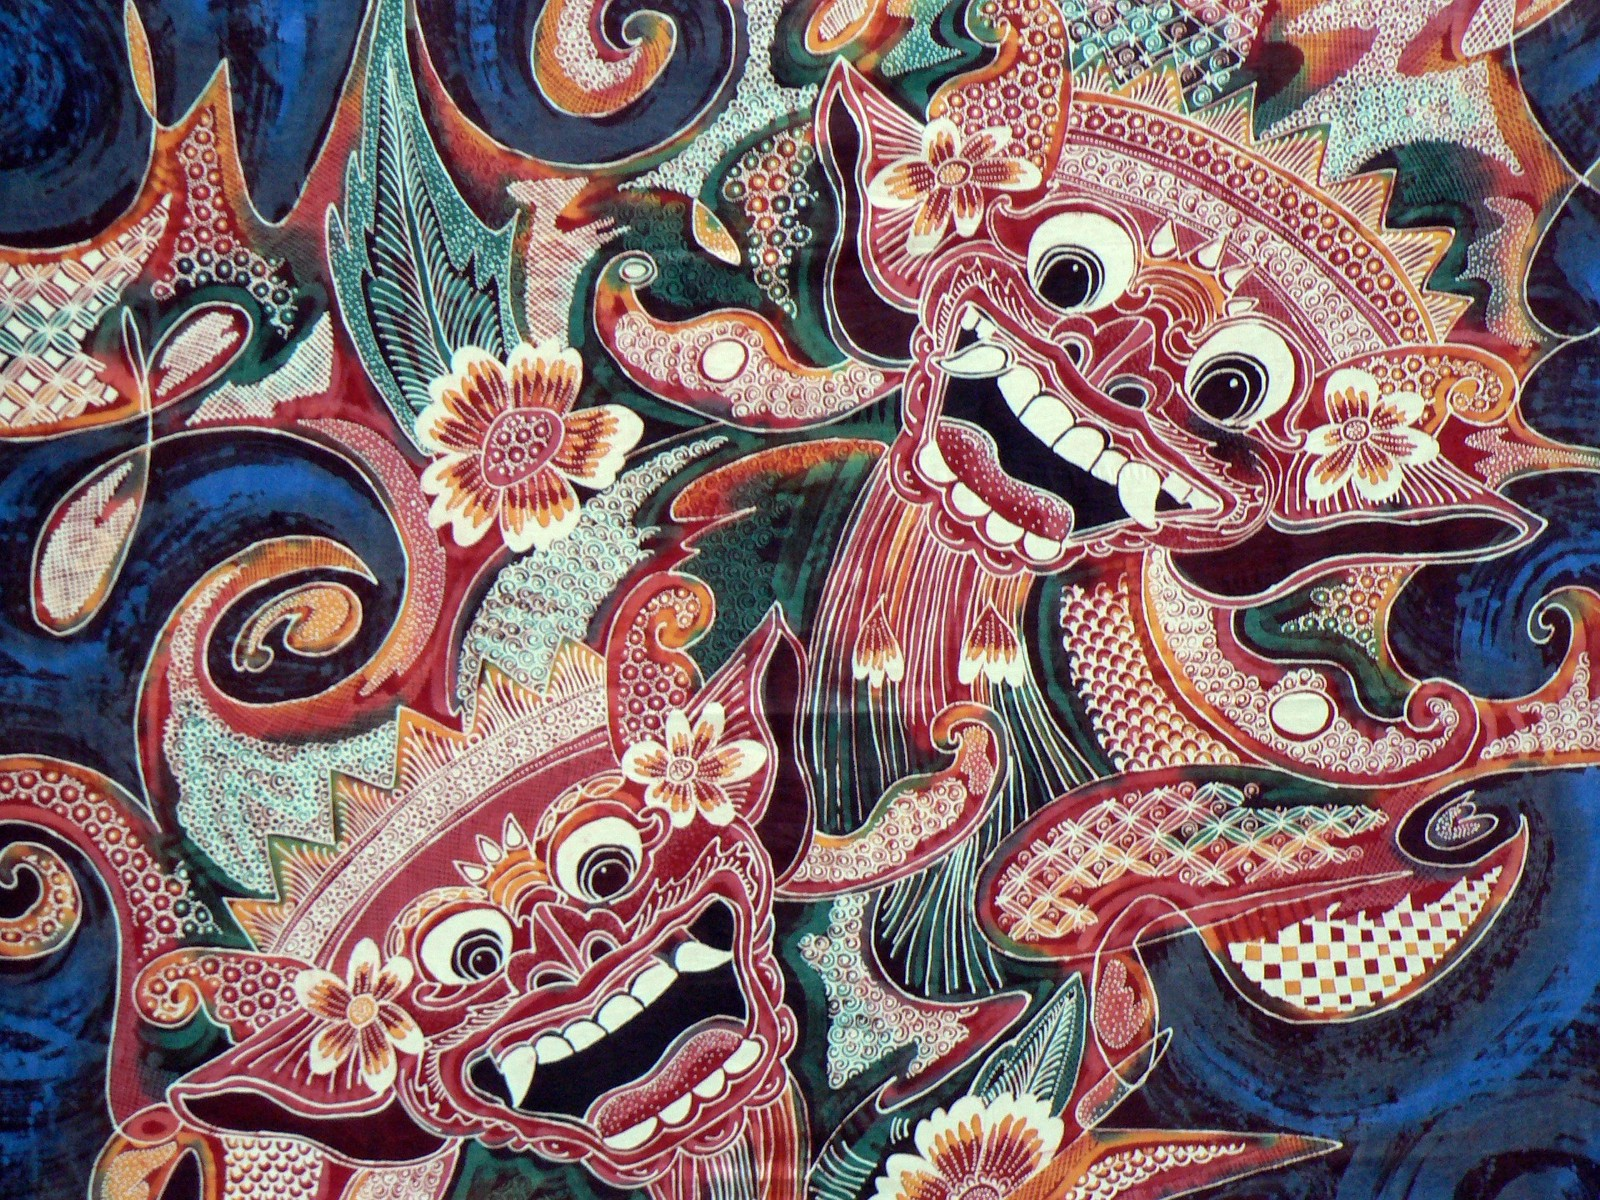 Ghostly Traditions Monsters And Spirits From The Balinese Culture